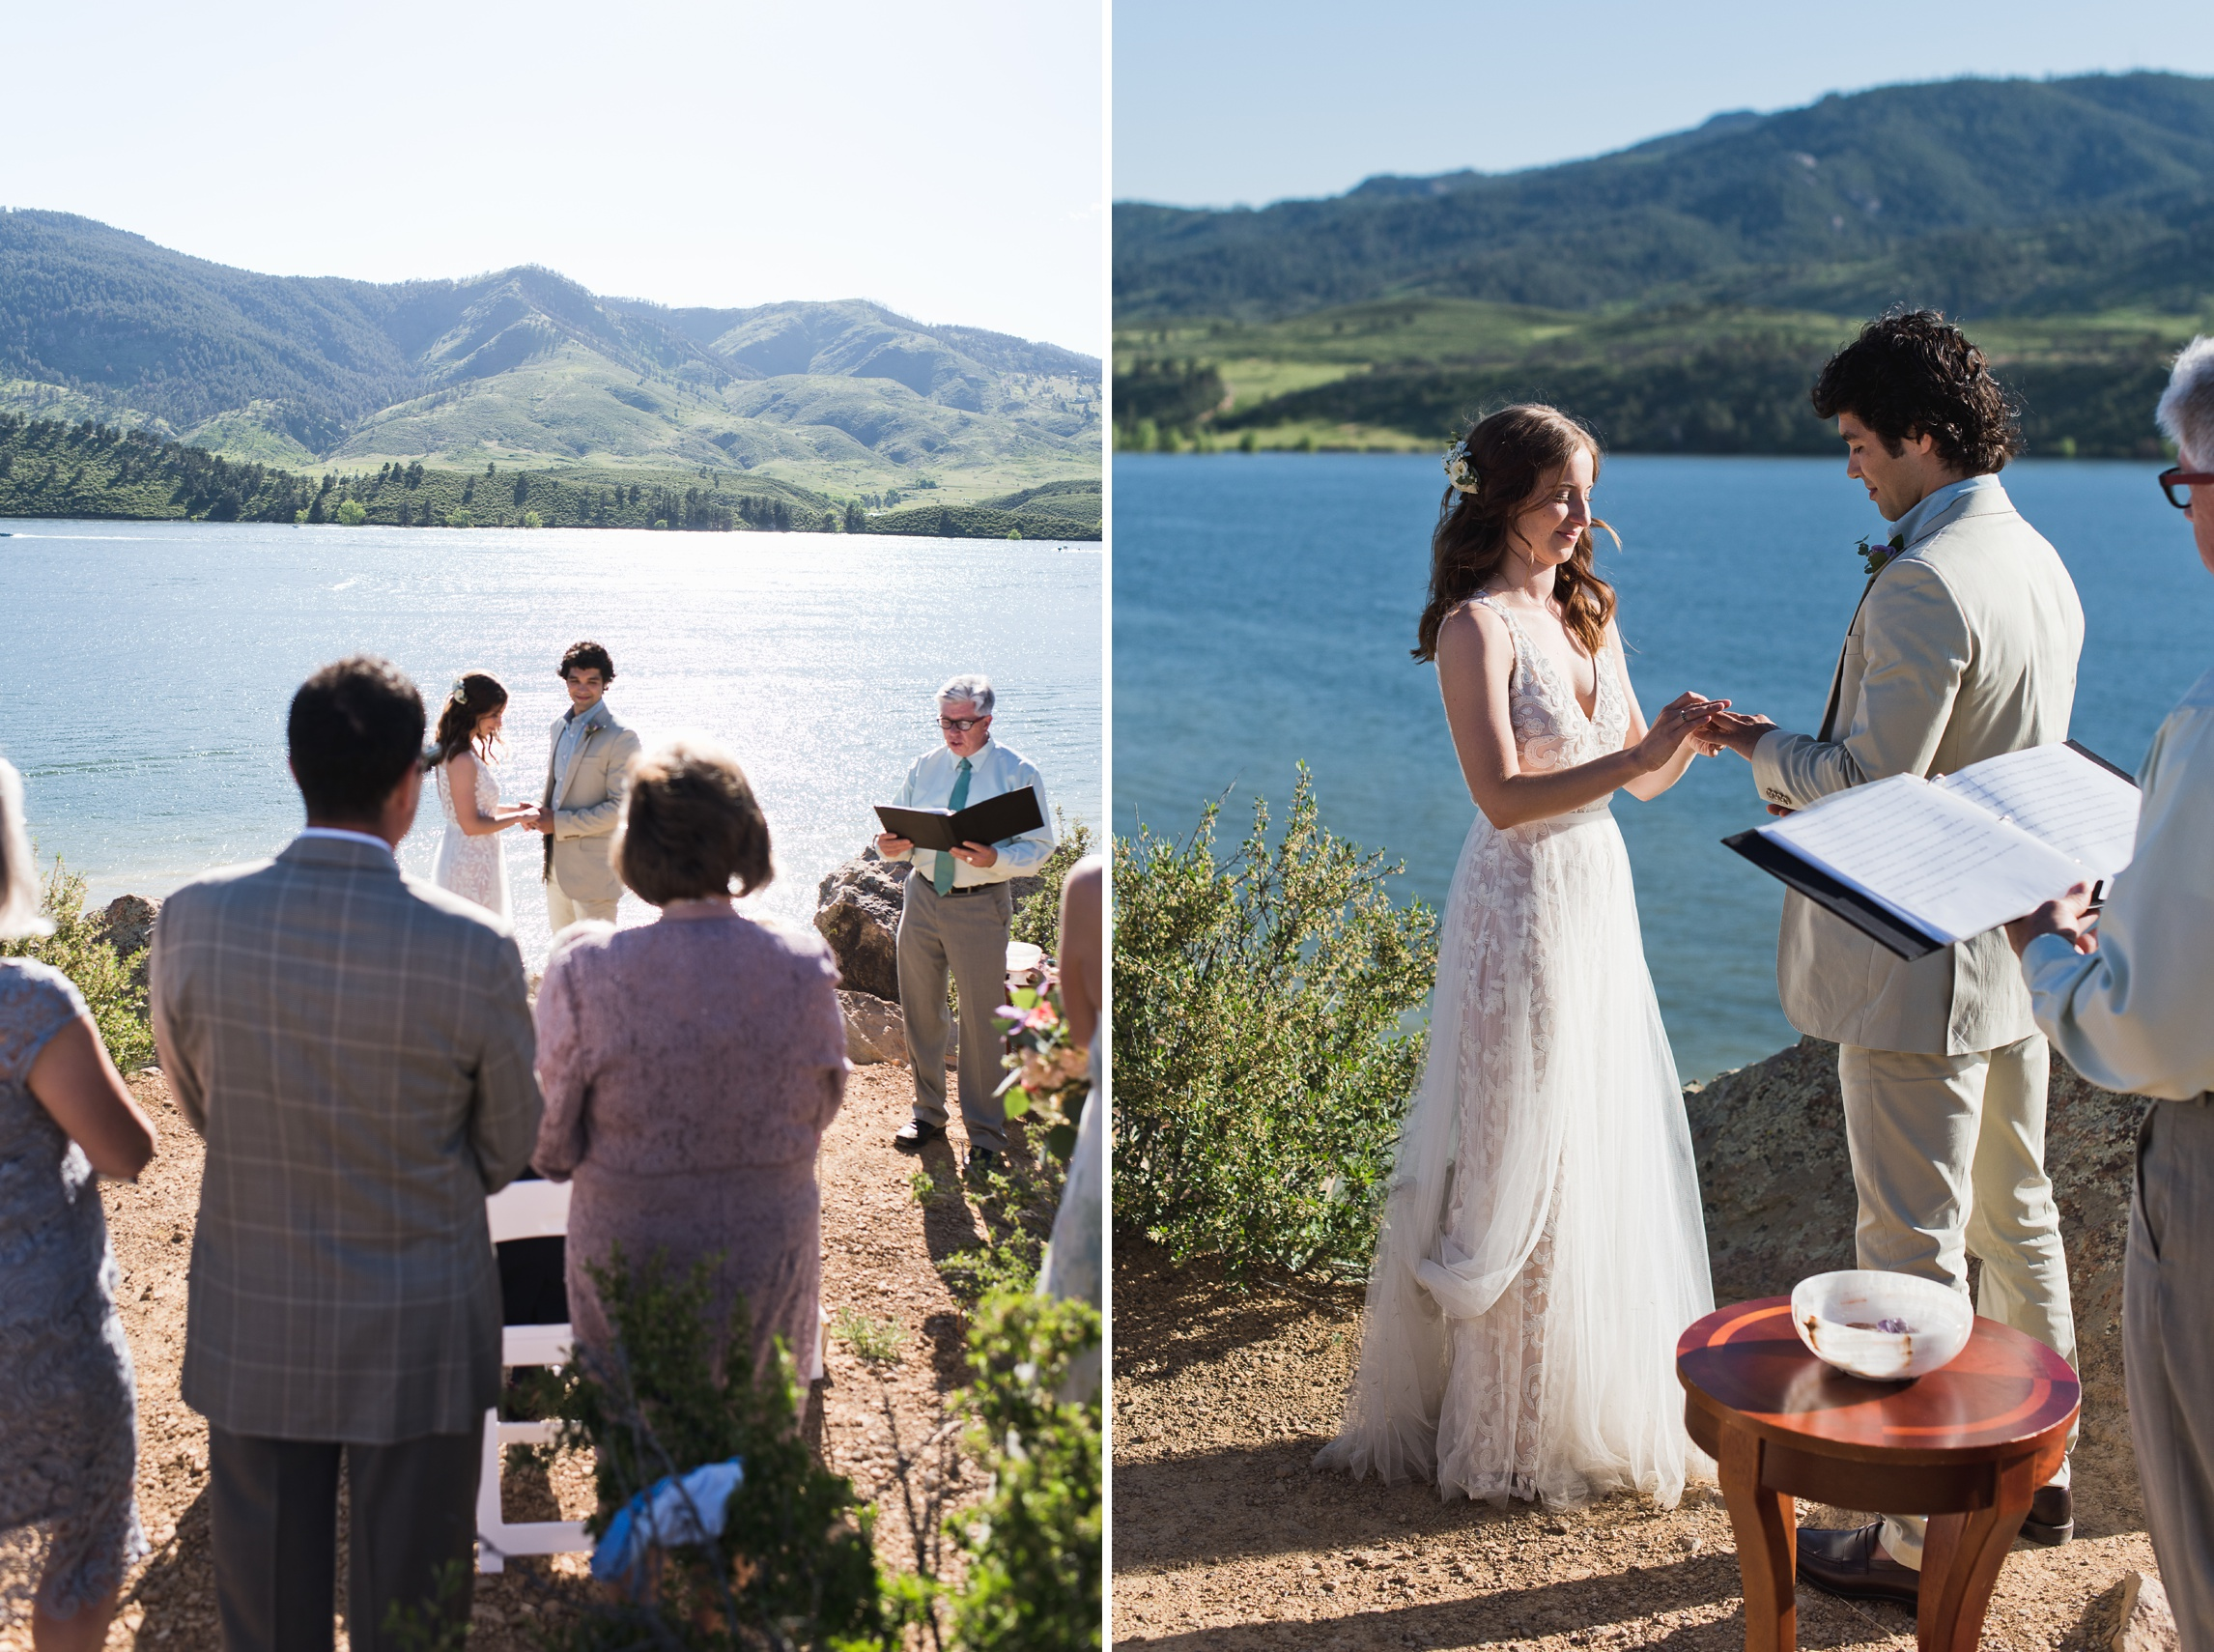 A bride and groom get married overlooking Horsetooth Reservoir in Fort Collins, Colorado. Wedding photography by Sonja Salzburg of Sonja K Photography.